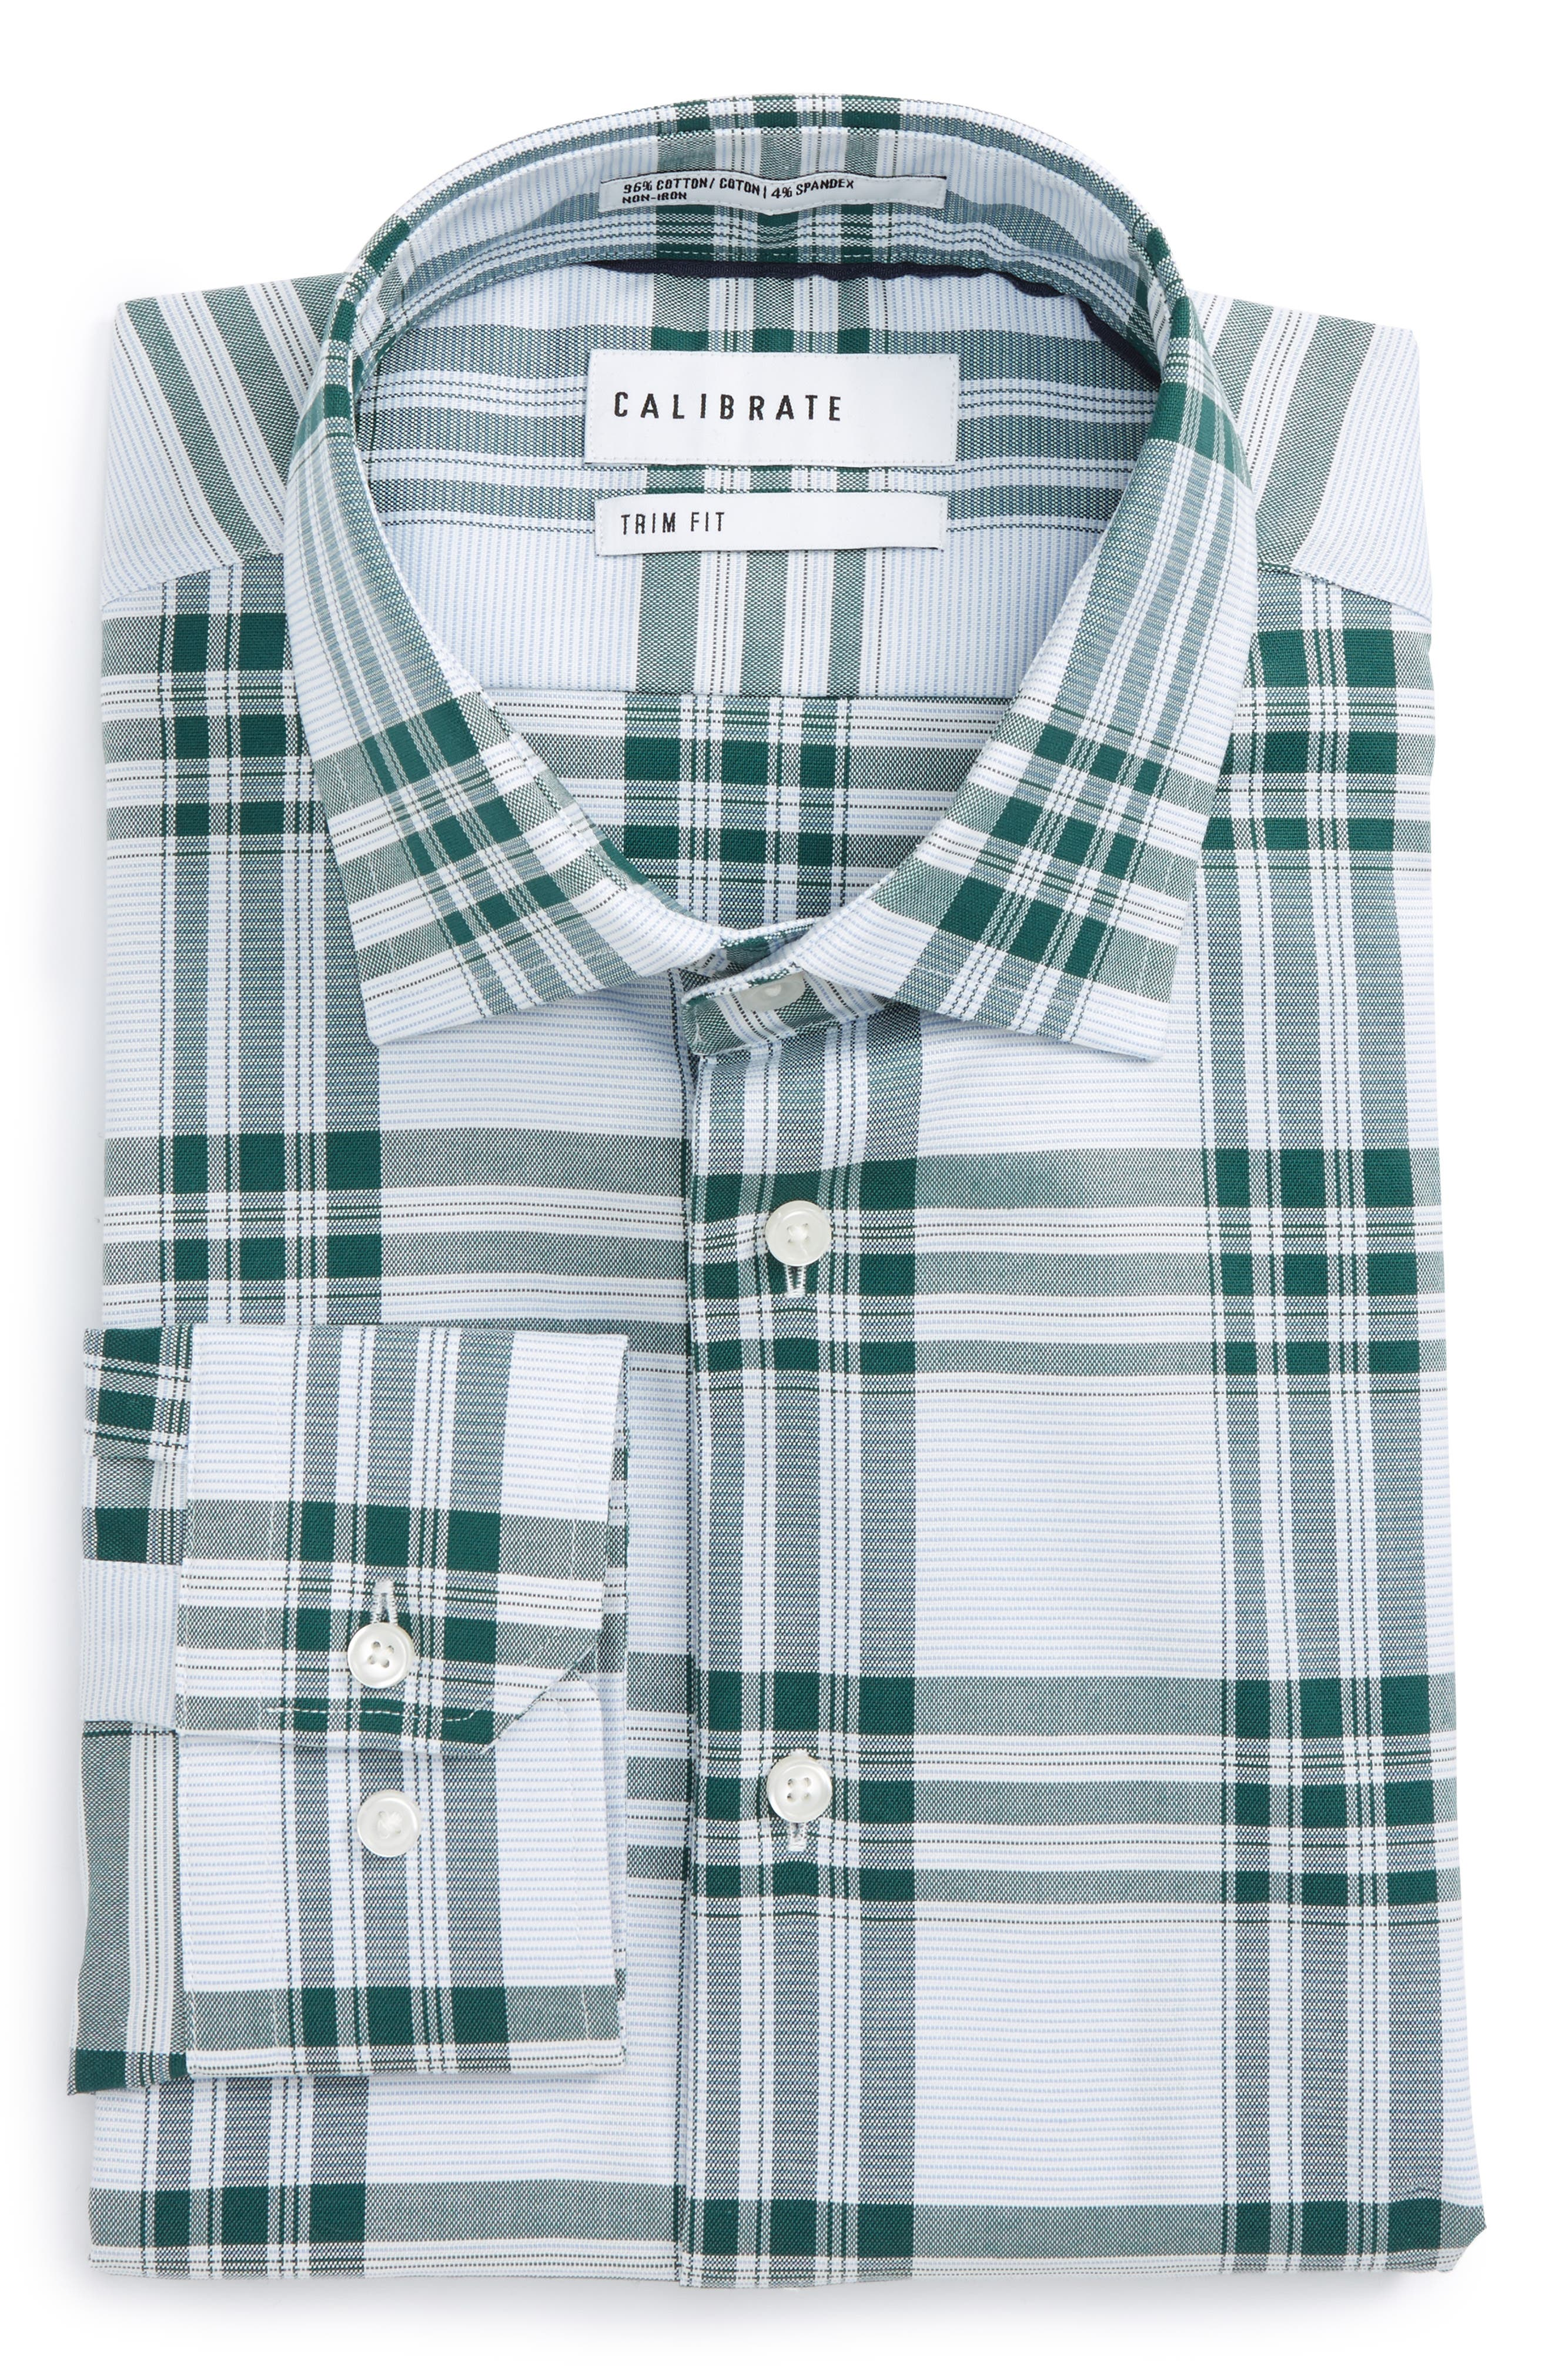 Alternate Image 1 Selected - Calibrate Trim Fit Plaid Non-Iron Stretch Dress Shirt